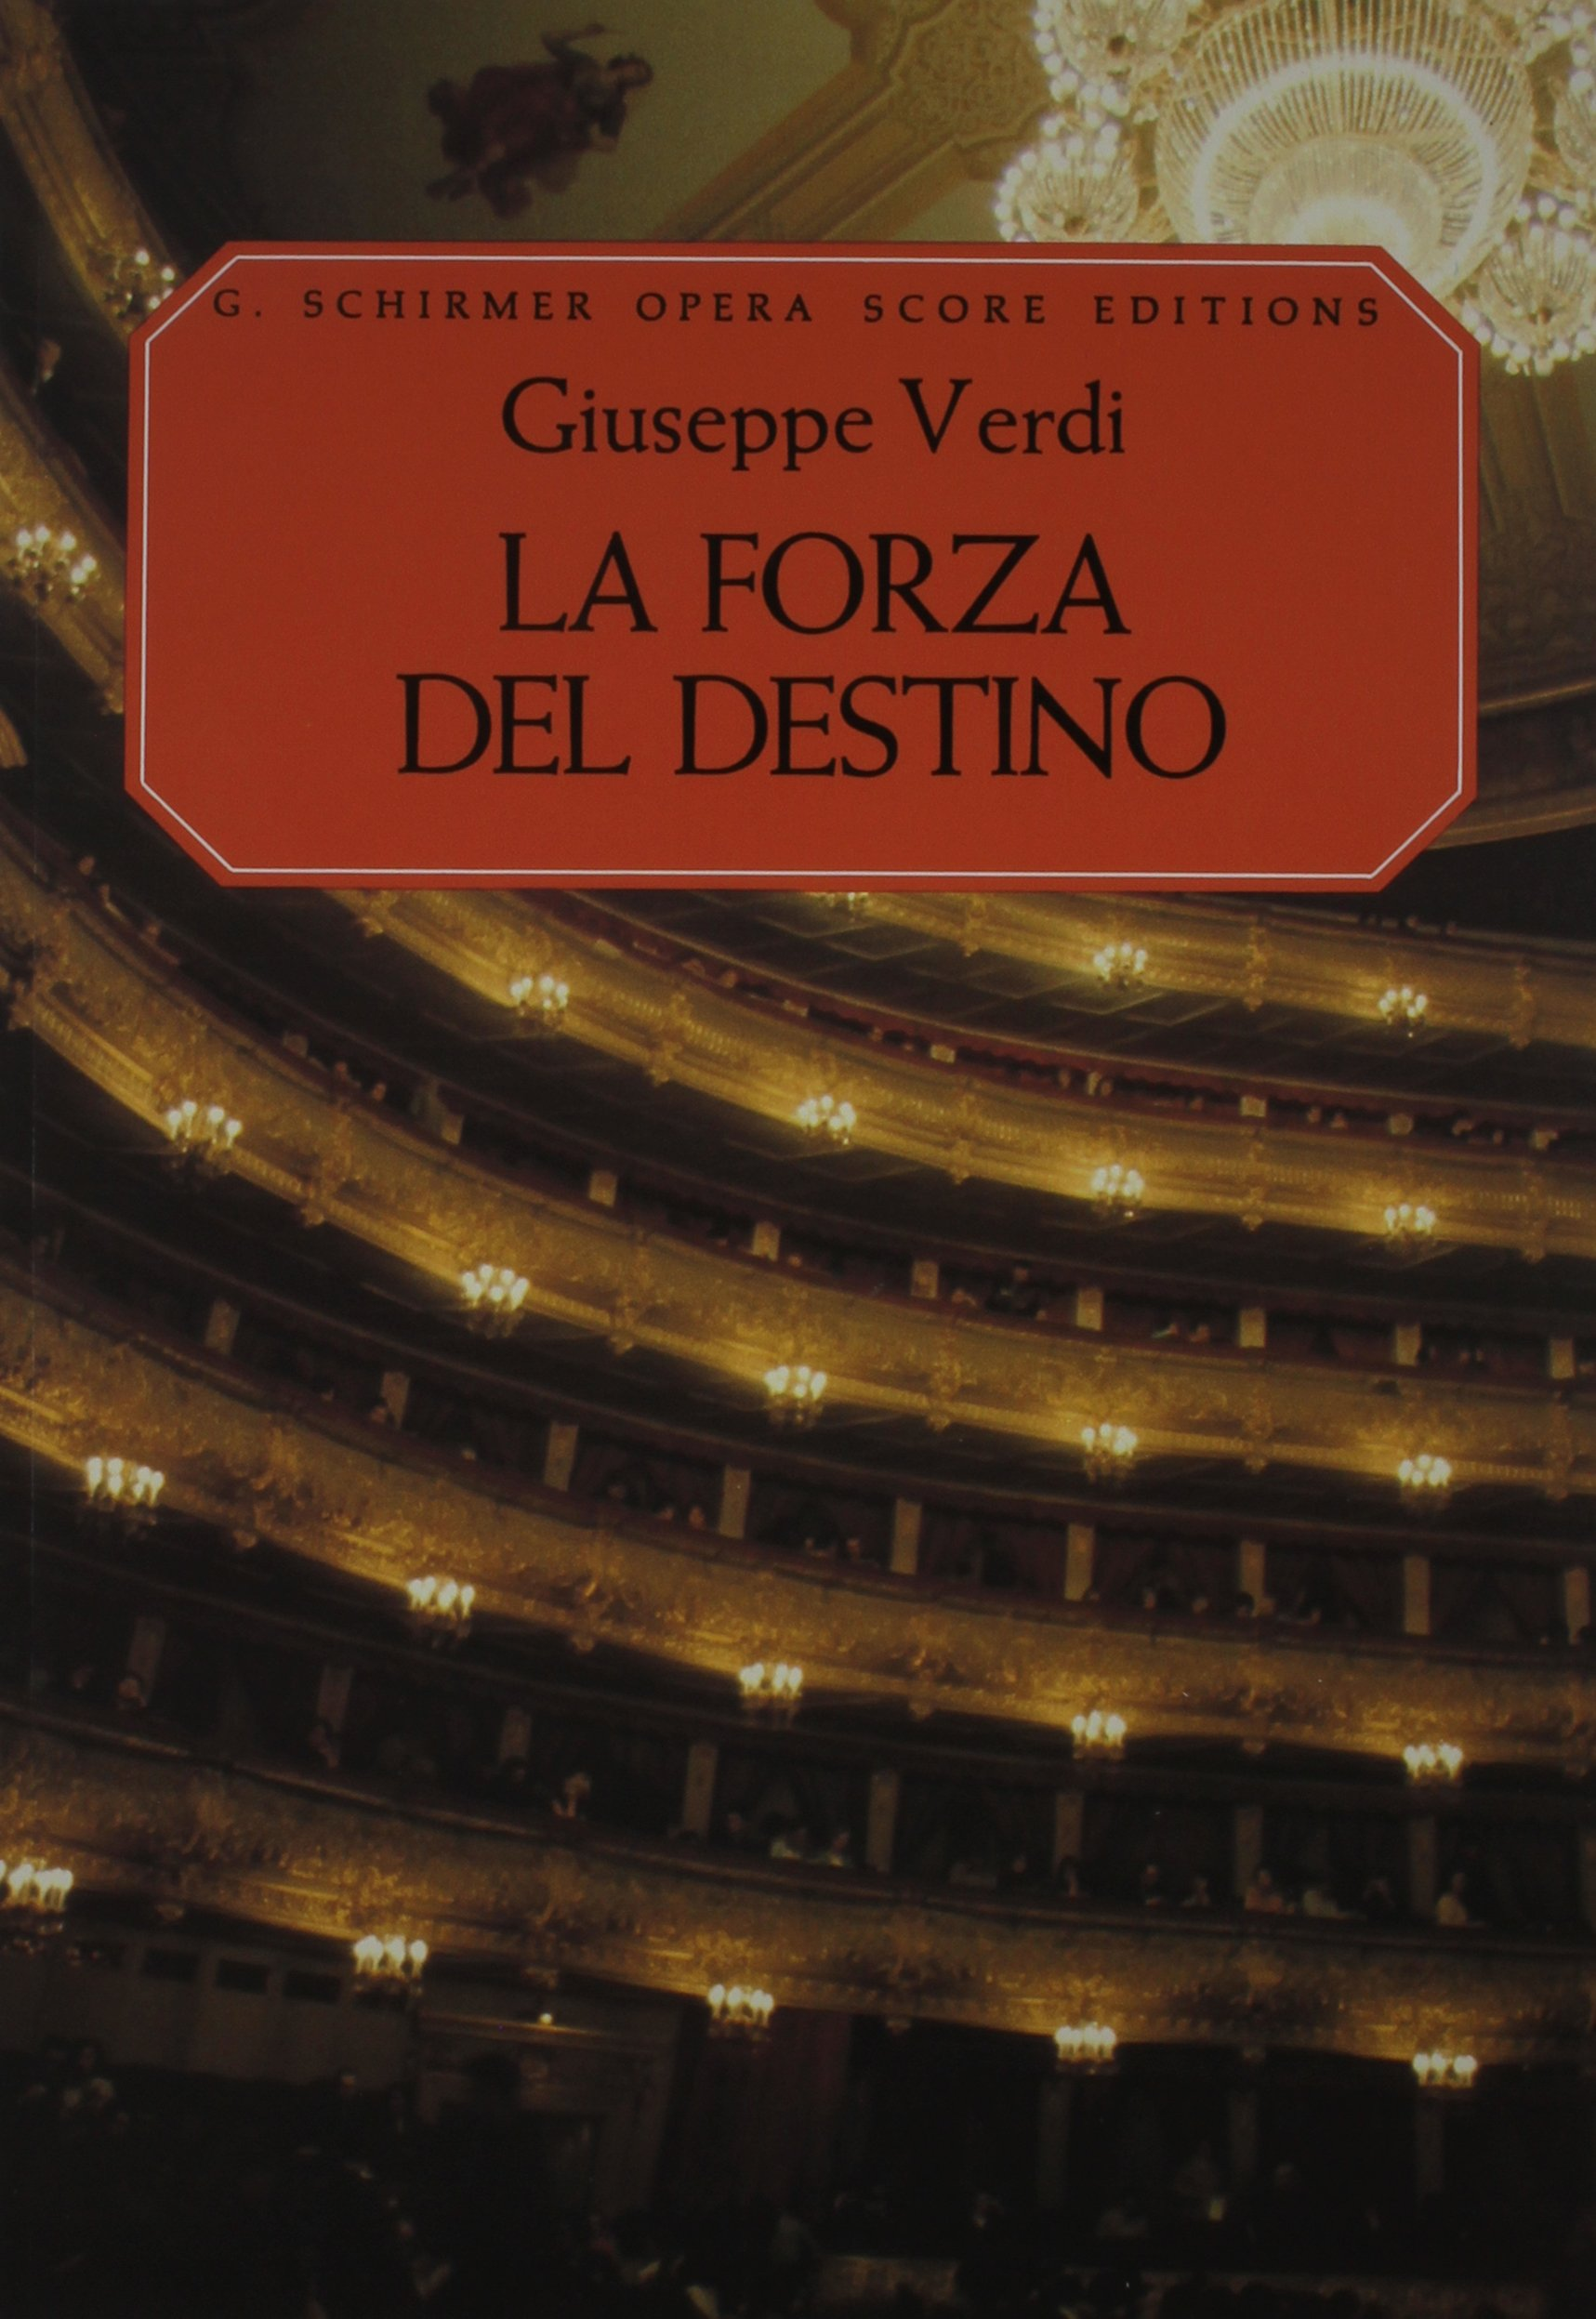 La Forza del Destino: Vocal Score: Ruth Martin, Giuseppe Verdi:  0073999324907: Amazon.com: Books